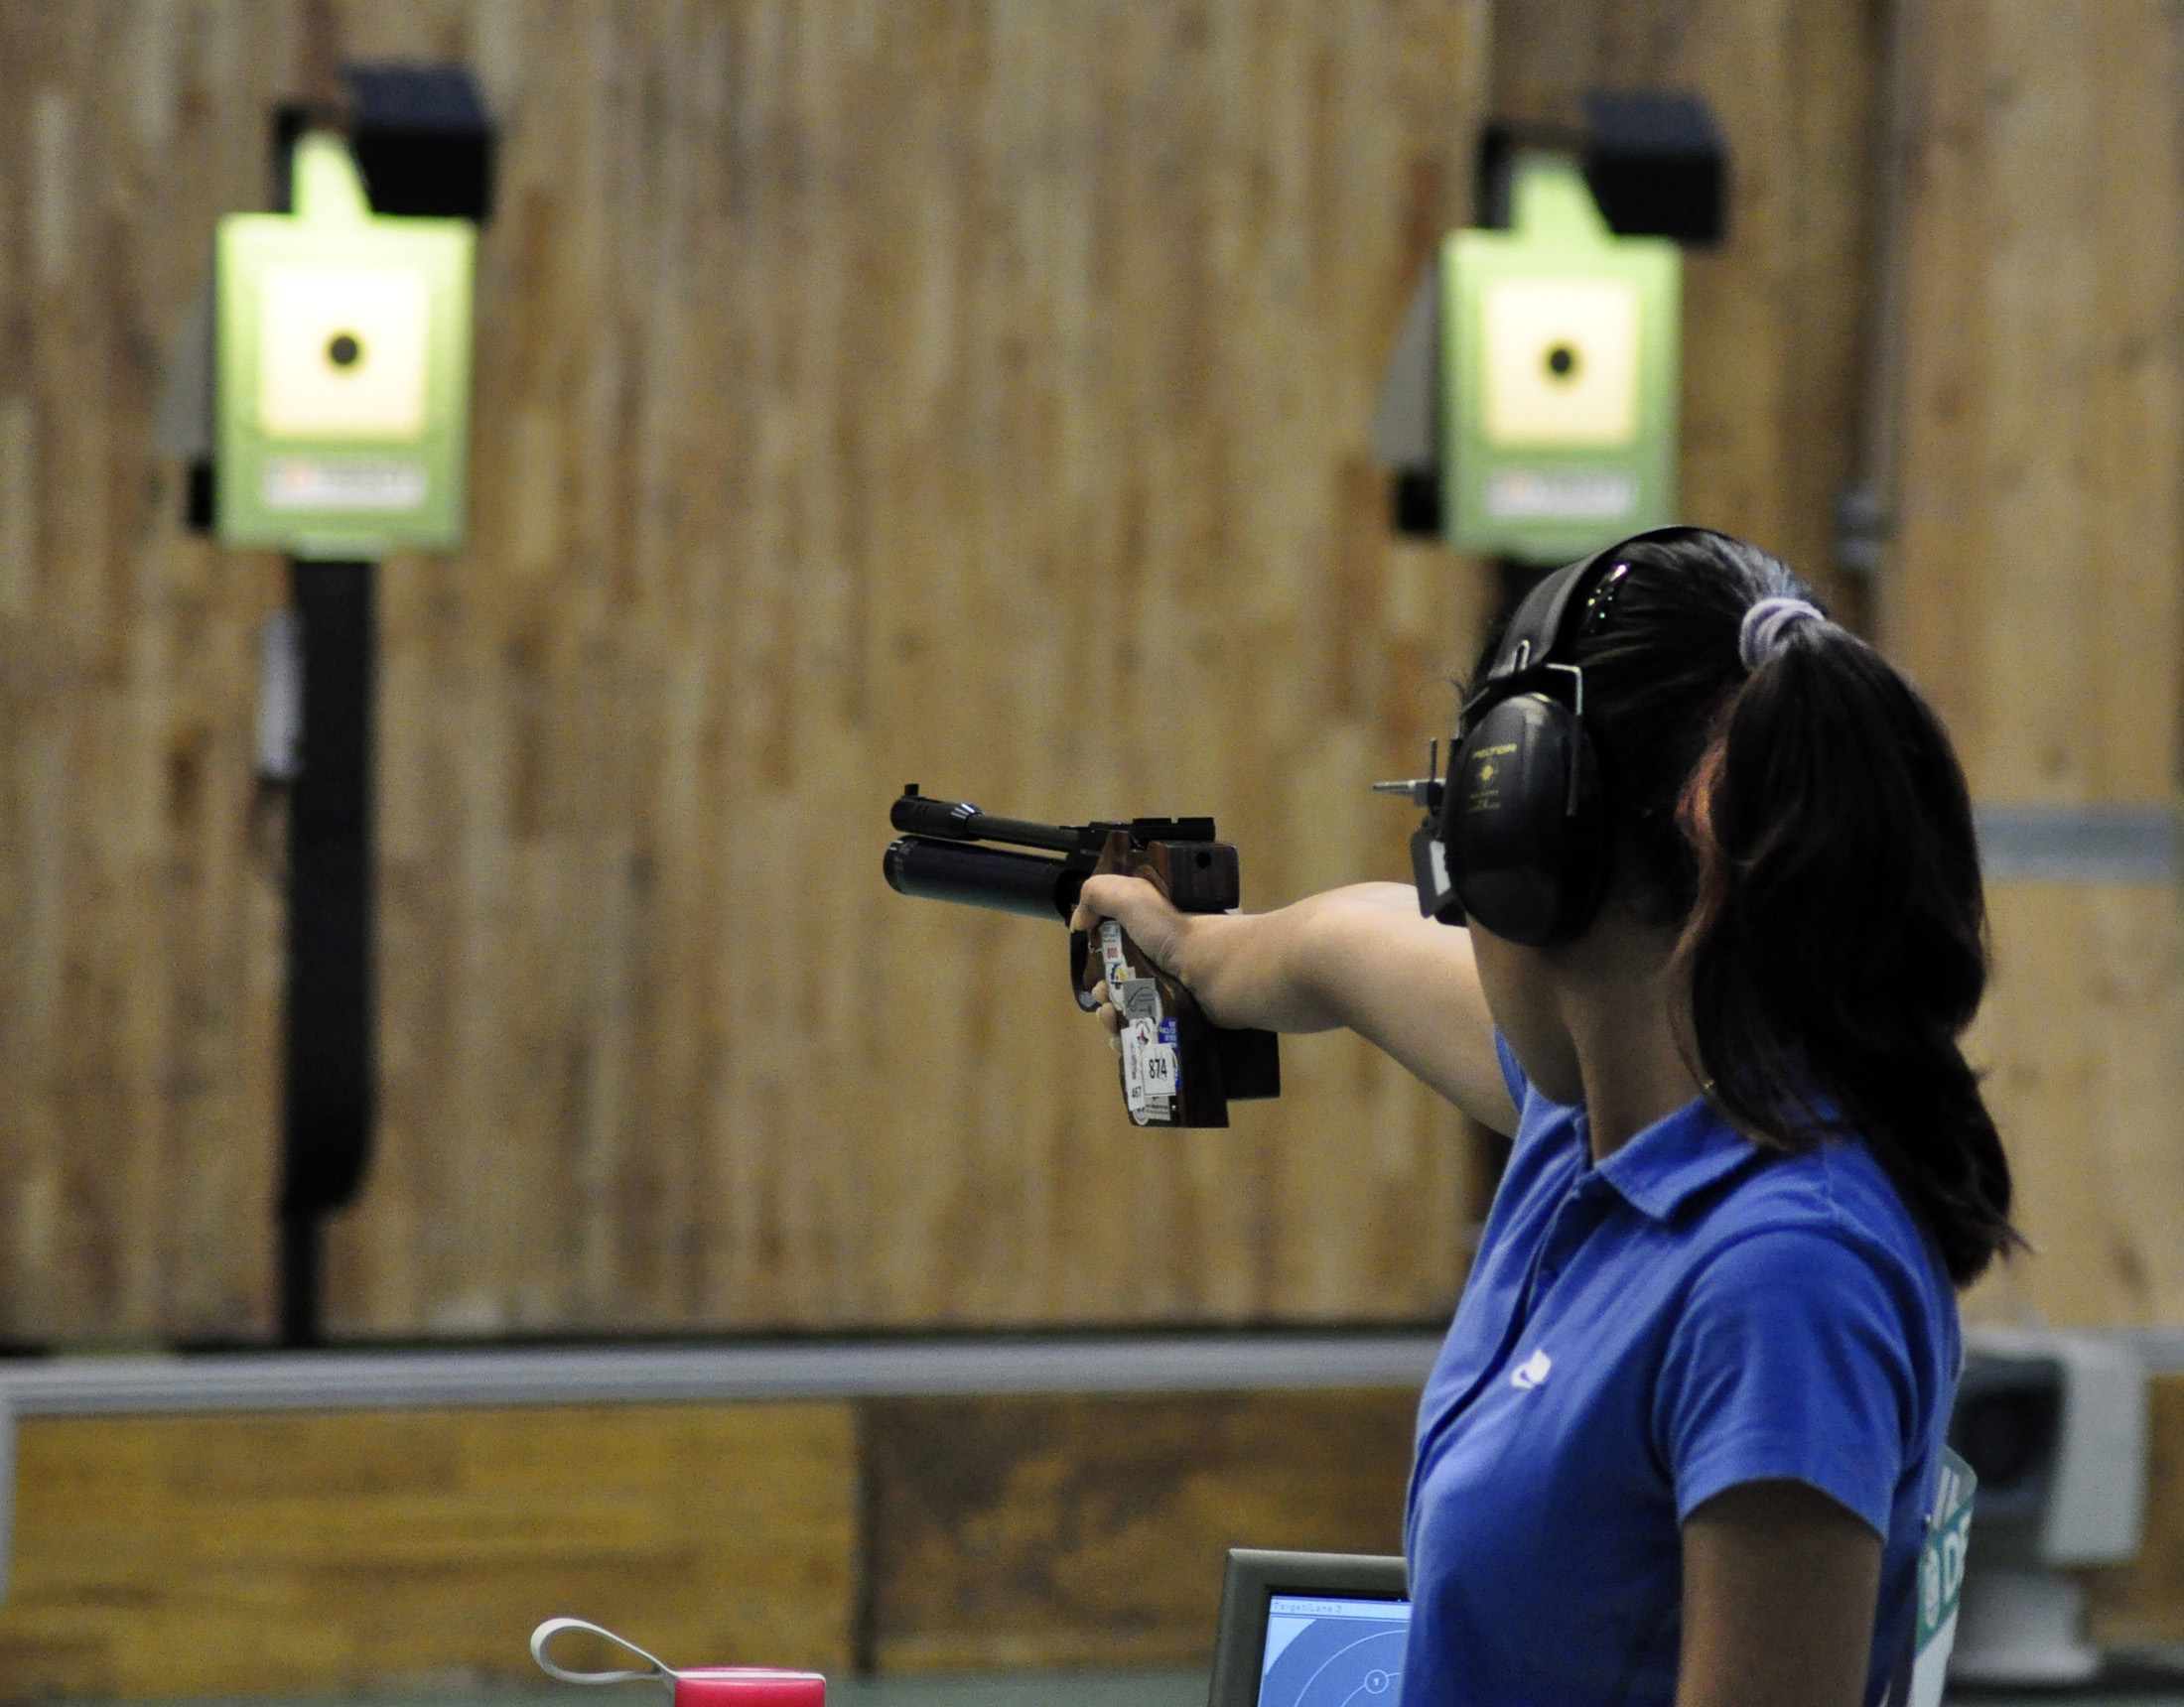 XIX Commonwealth Games-2010 Delhi: (Women's Singles 10 m Air Pistol Final) Heena Sidhu of India in an action at Dr Karni Singh Shooting Range in Delhi on October 13, 2010. India won the Silver medal. P D Photo by Pratap Vinayagam